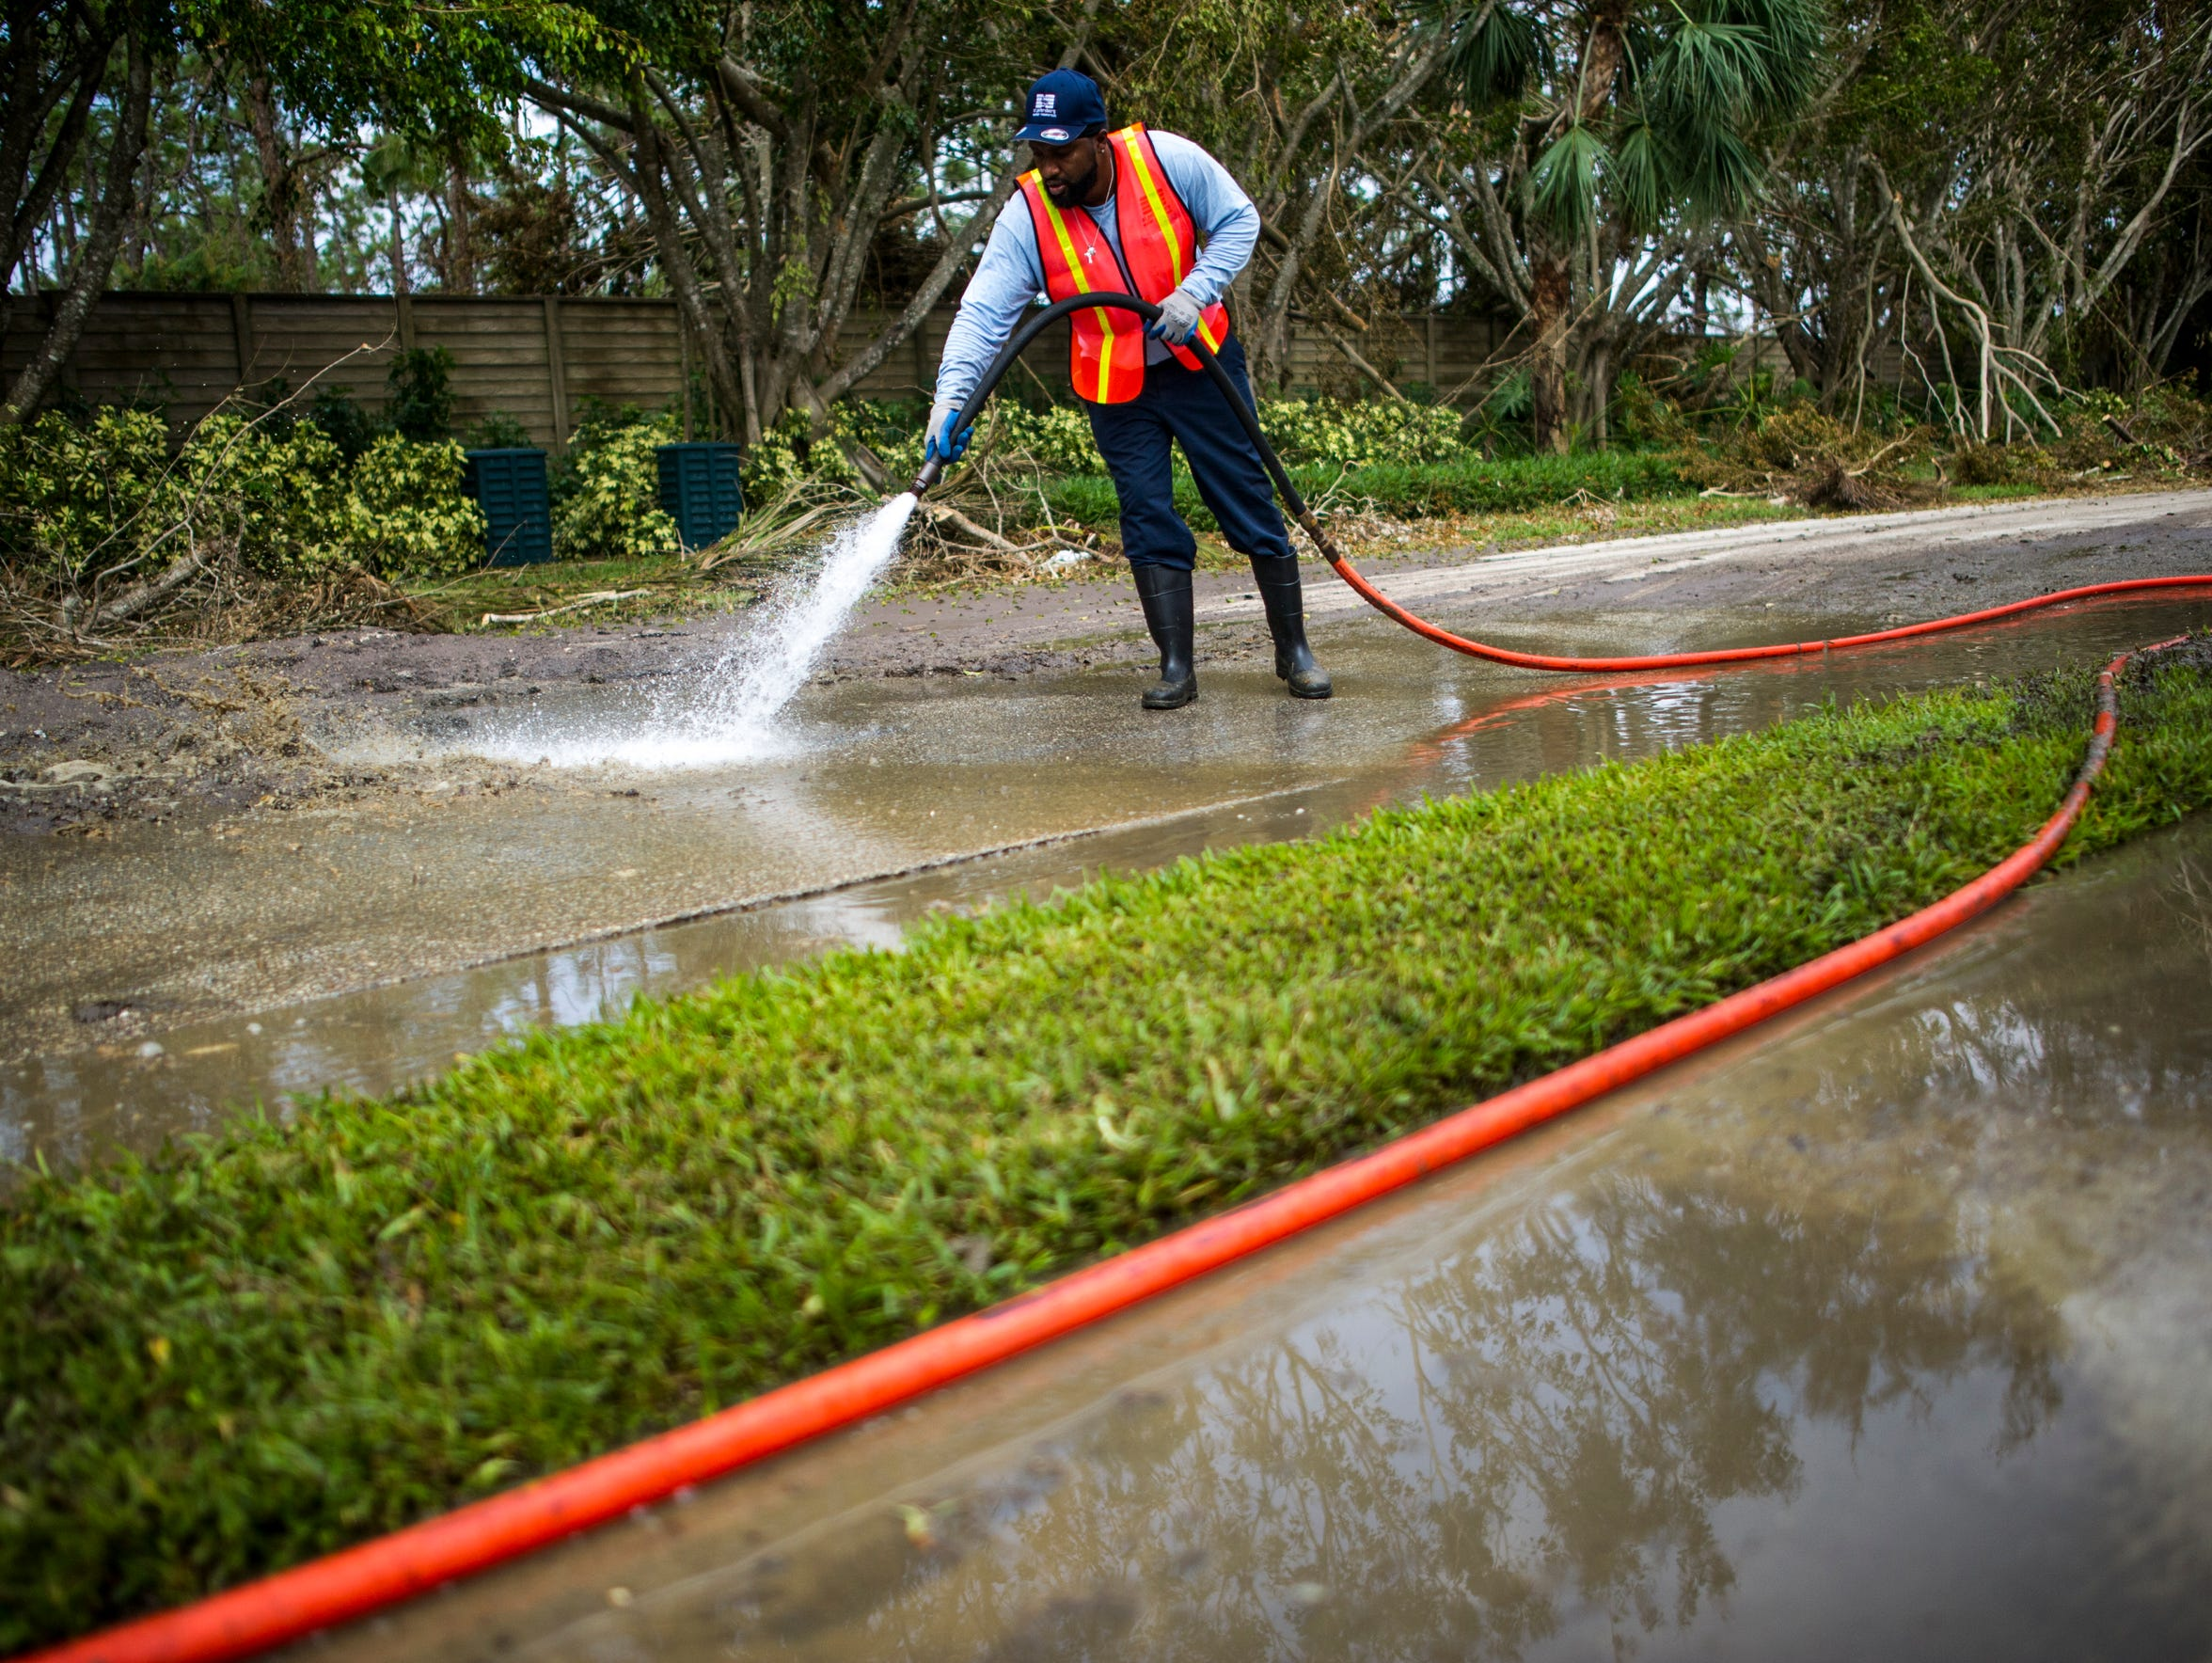 Darryl Jones, of St. Petersburg, sprays sewage from